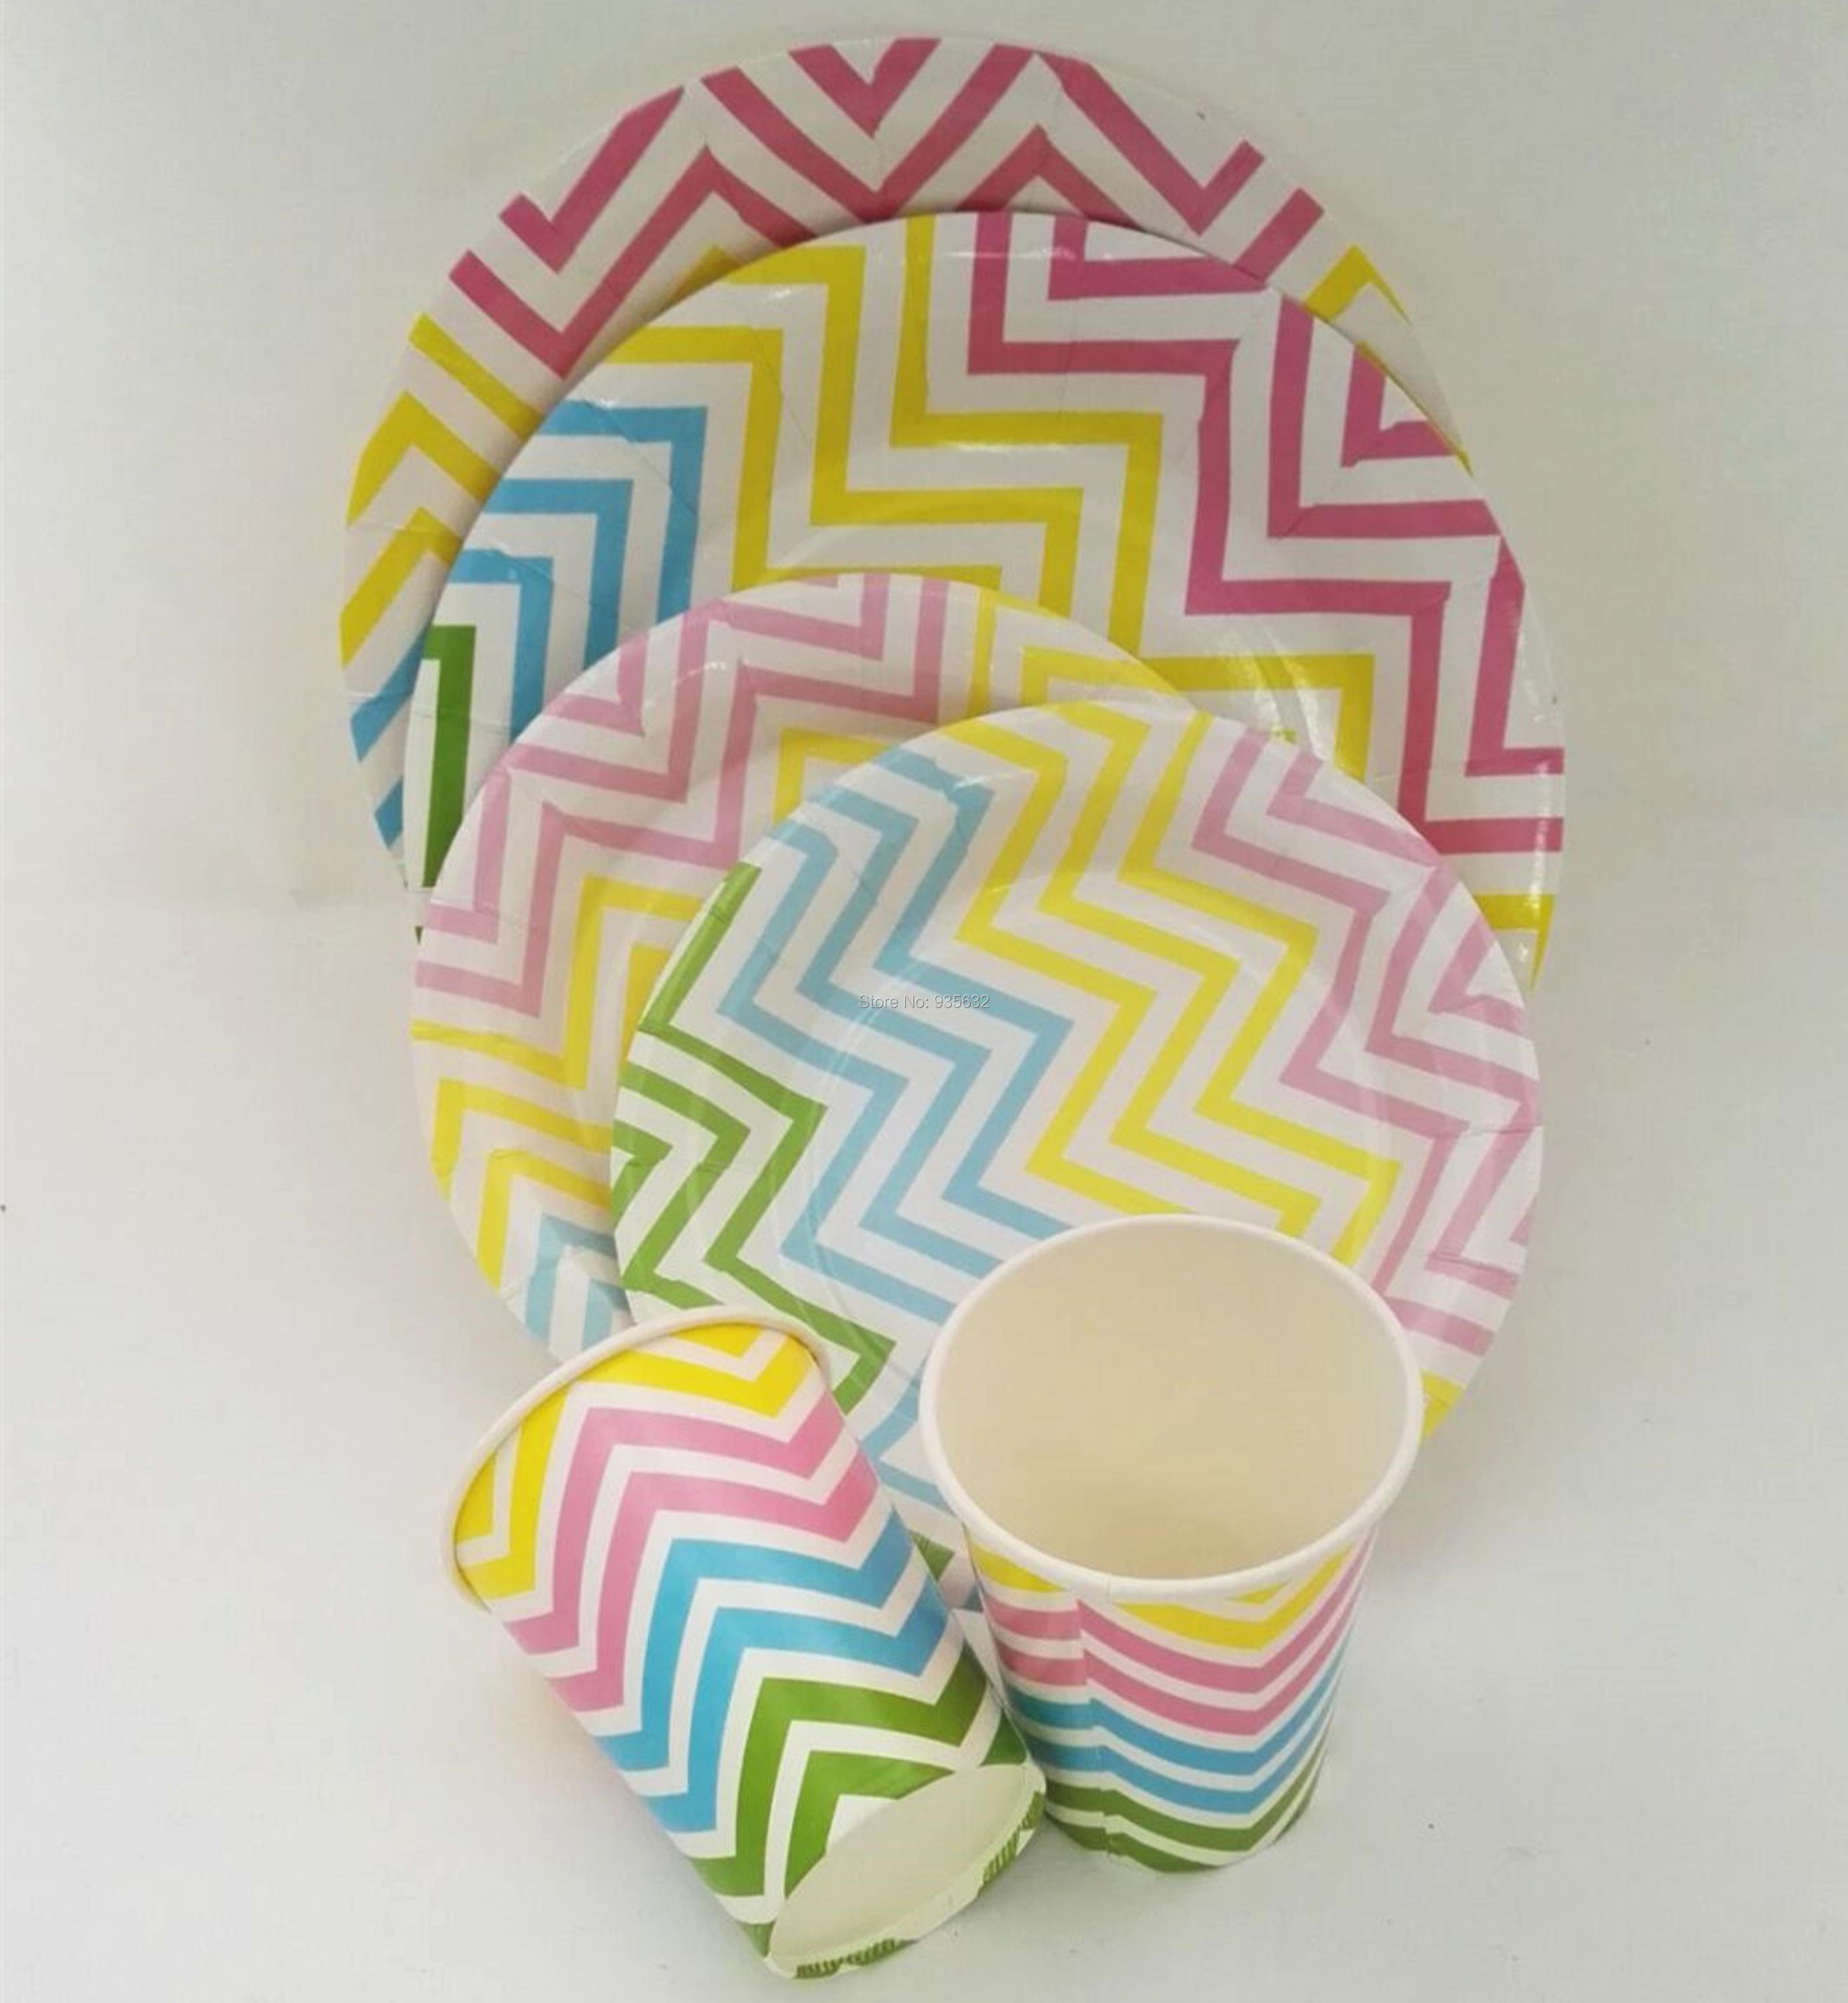 72pcs New Hot Sell Colorful Chevron Party Tableware Set 9 7 Paper Plate Cup for Wedding Birthday Supplies